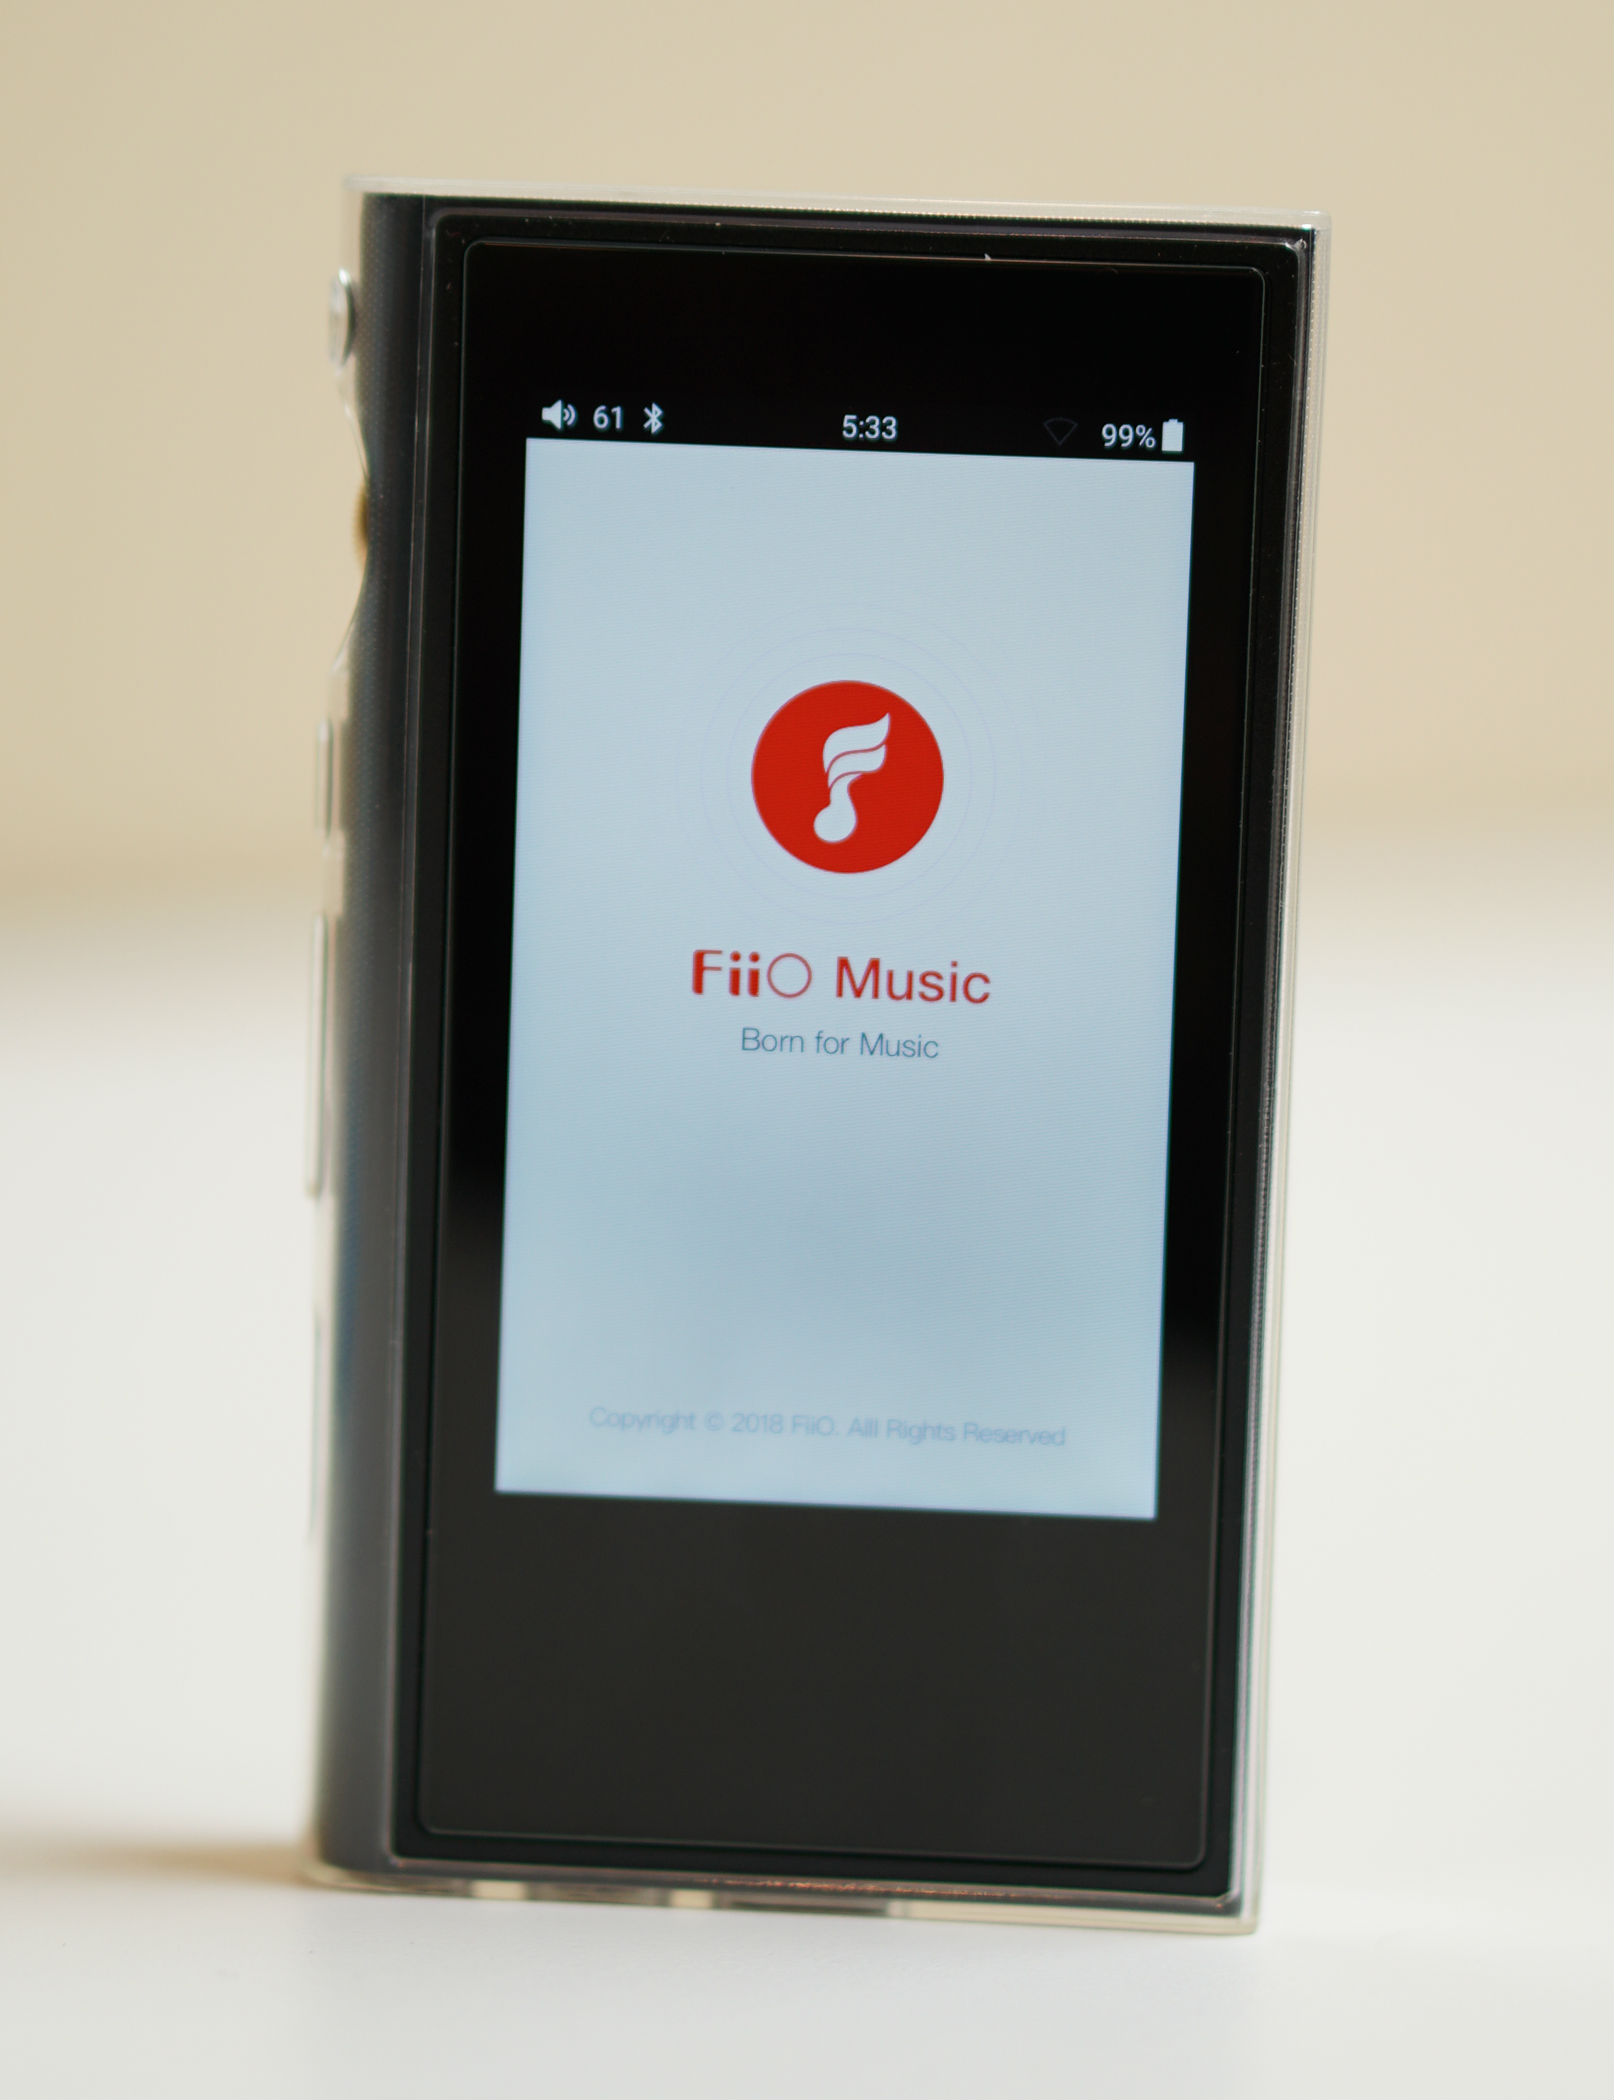 FiiO M9 Review - Best Digital Player for Modern Listening?